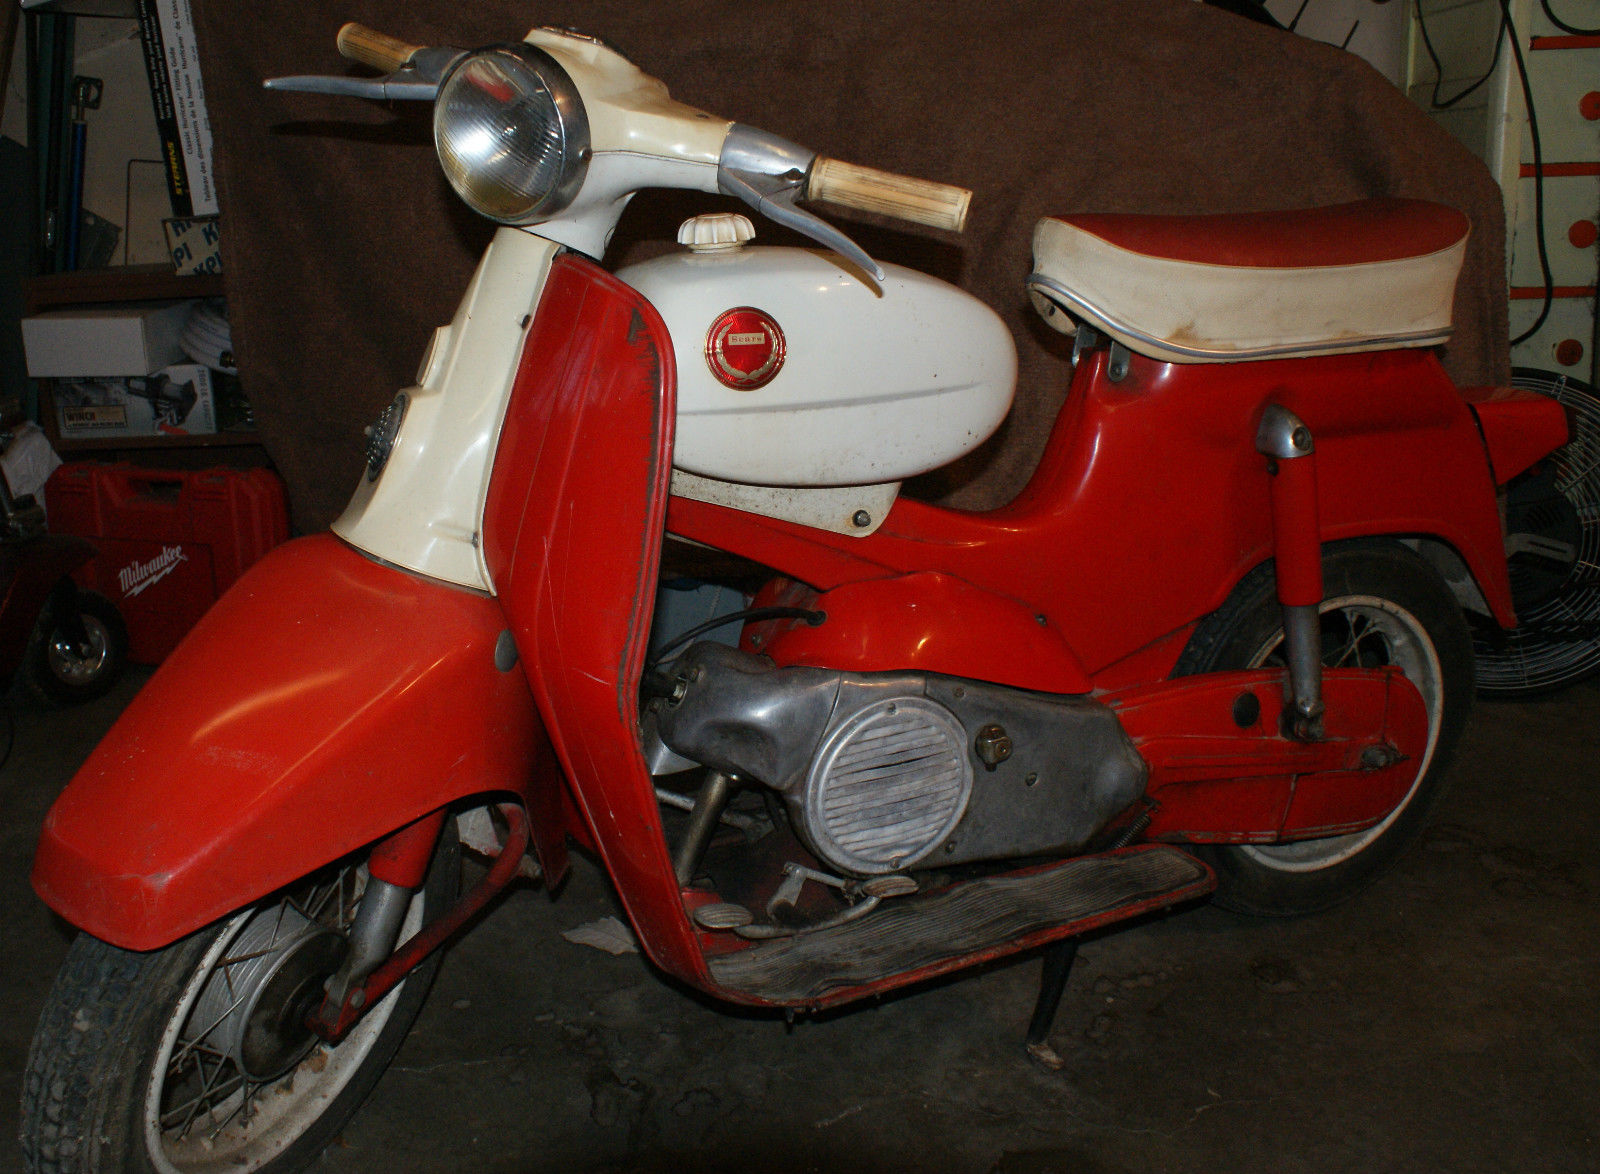 1966 sears allstate motor scooter built by steyr daimler puch just